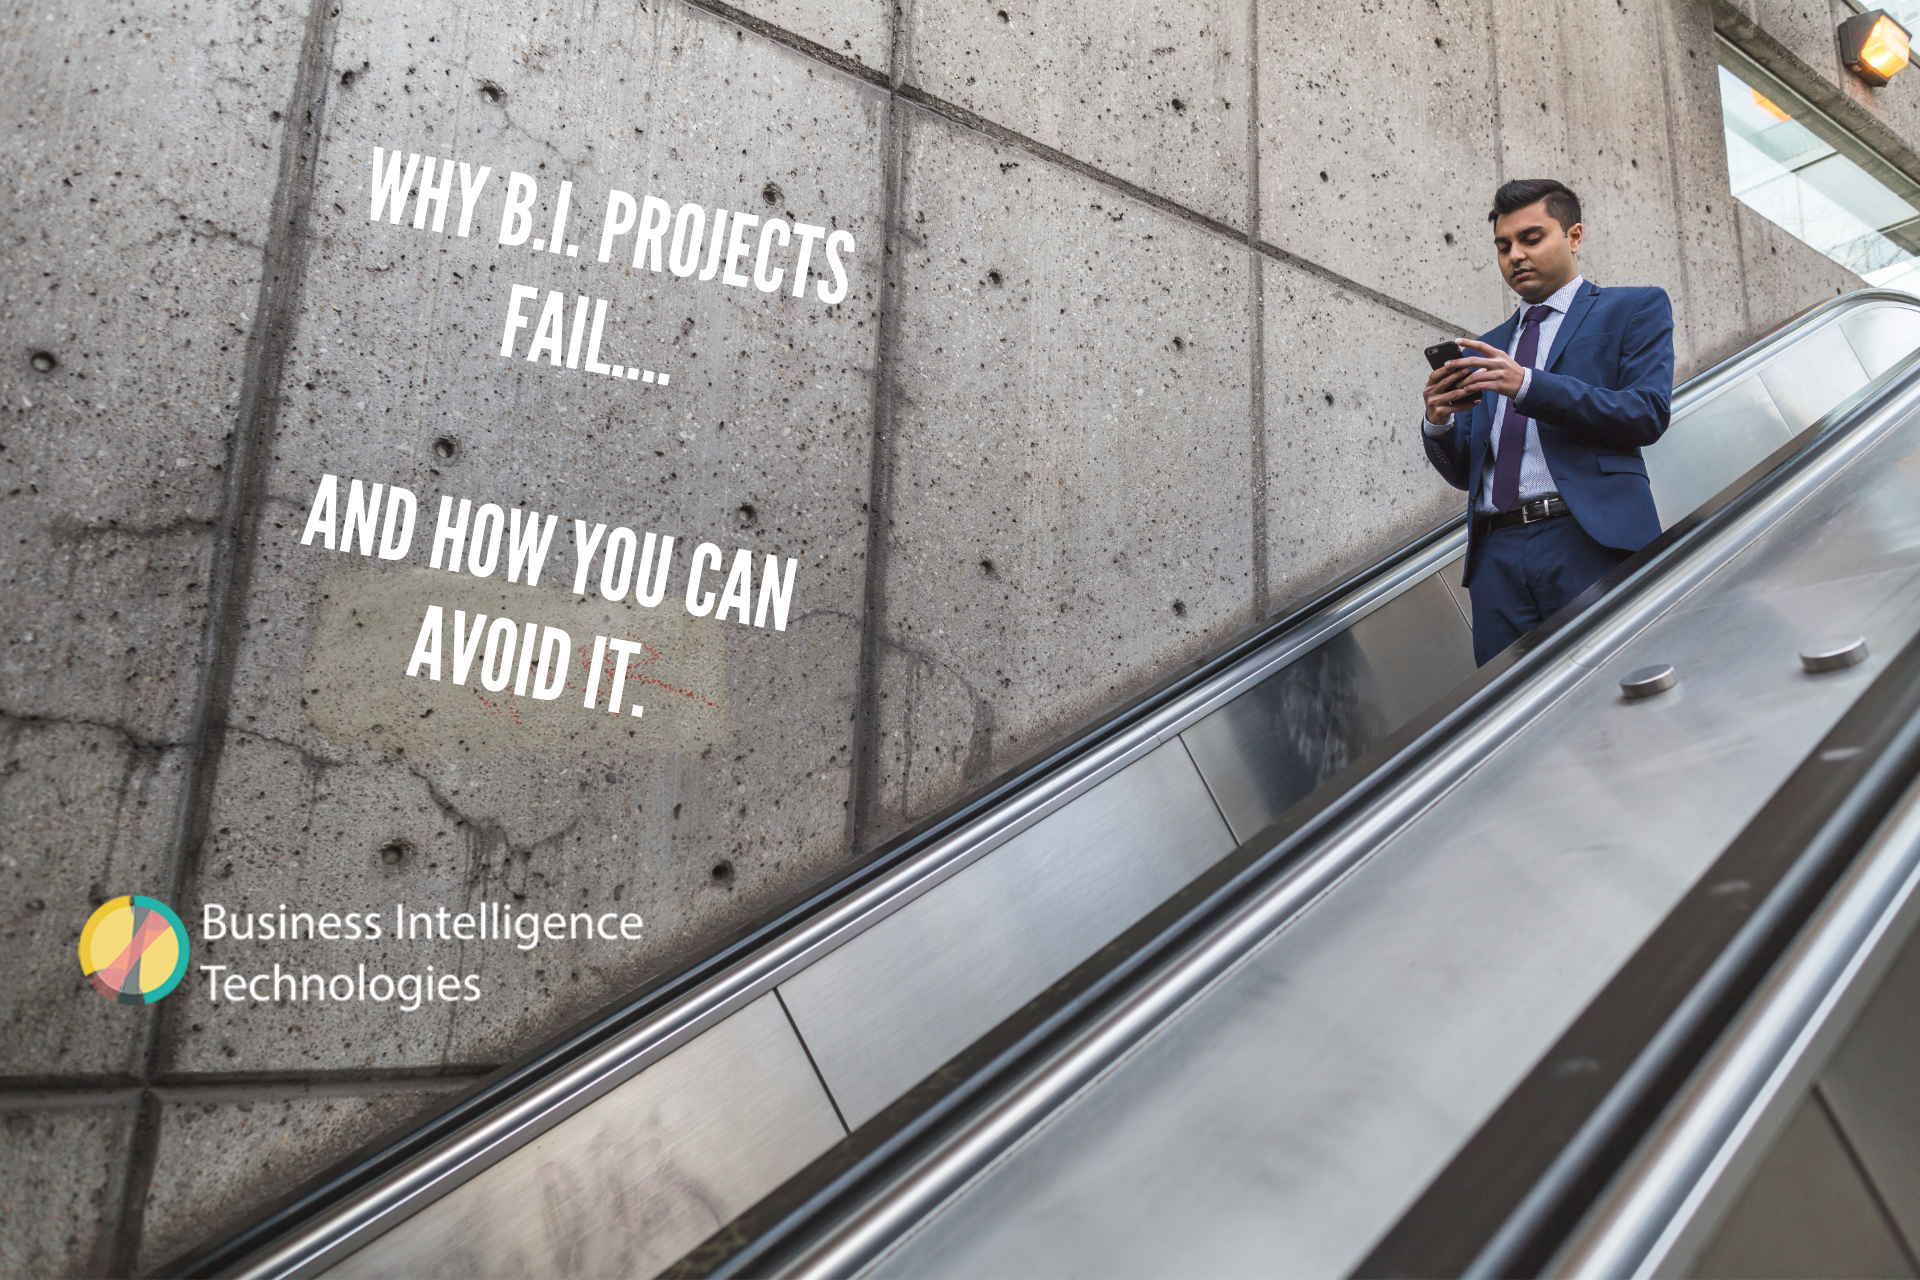 Why B.I. Projects Fail.... And how you can avoid it. (4)